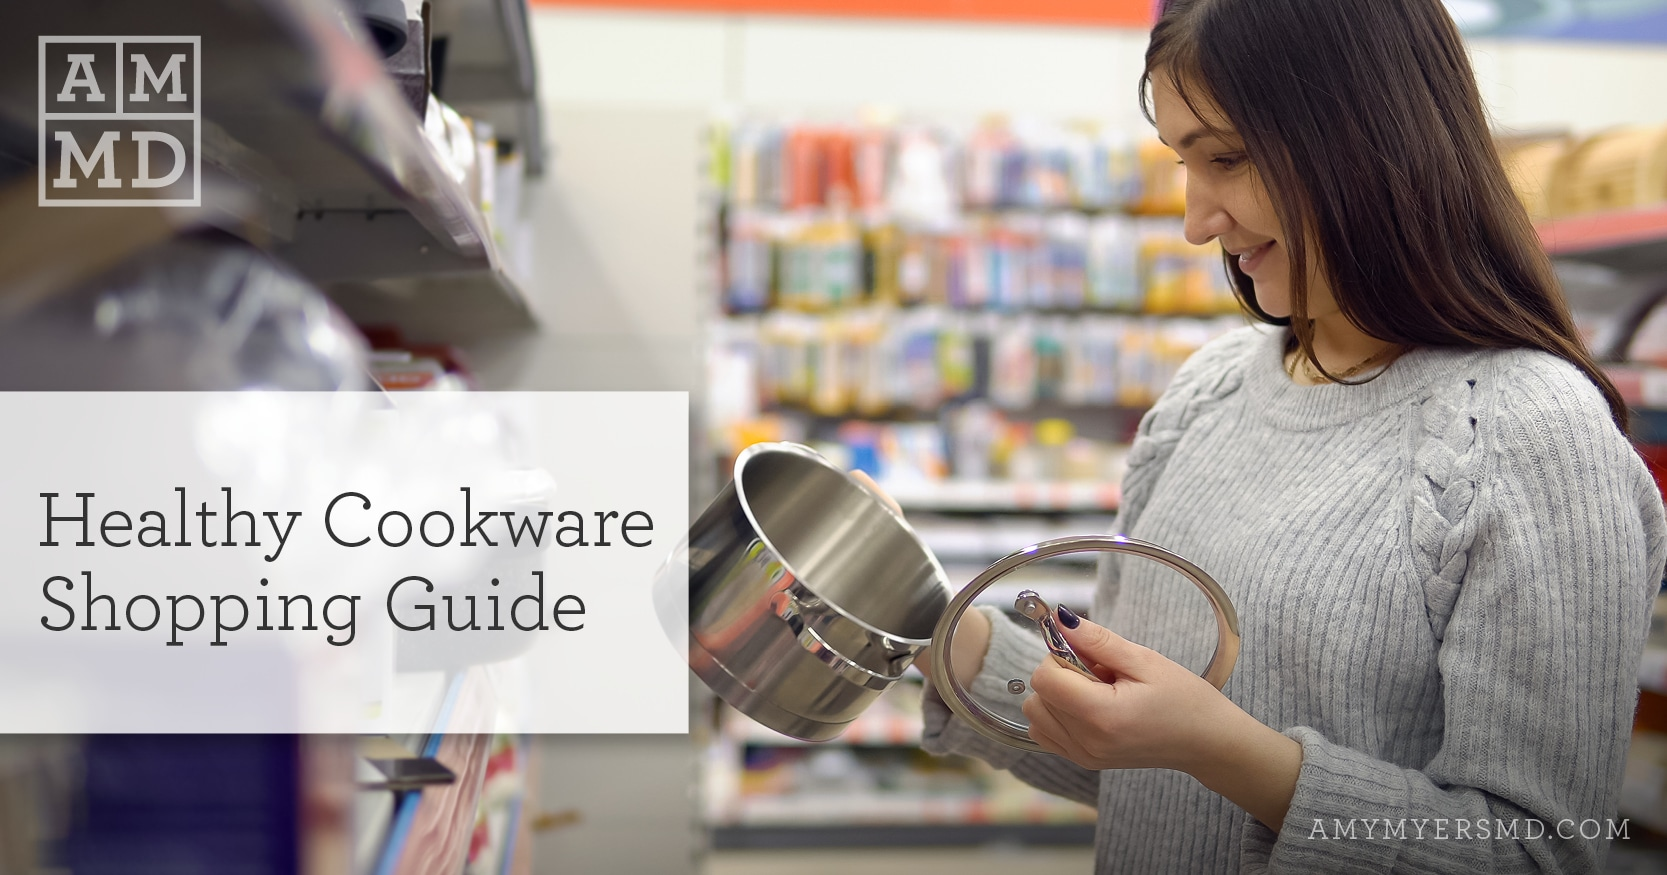 Healthy Cookware Shopping Guide - Amy Myers MD